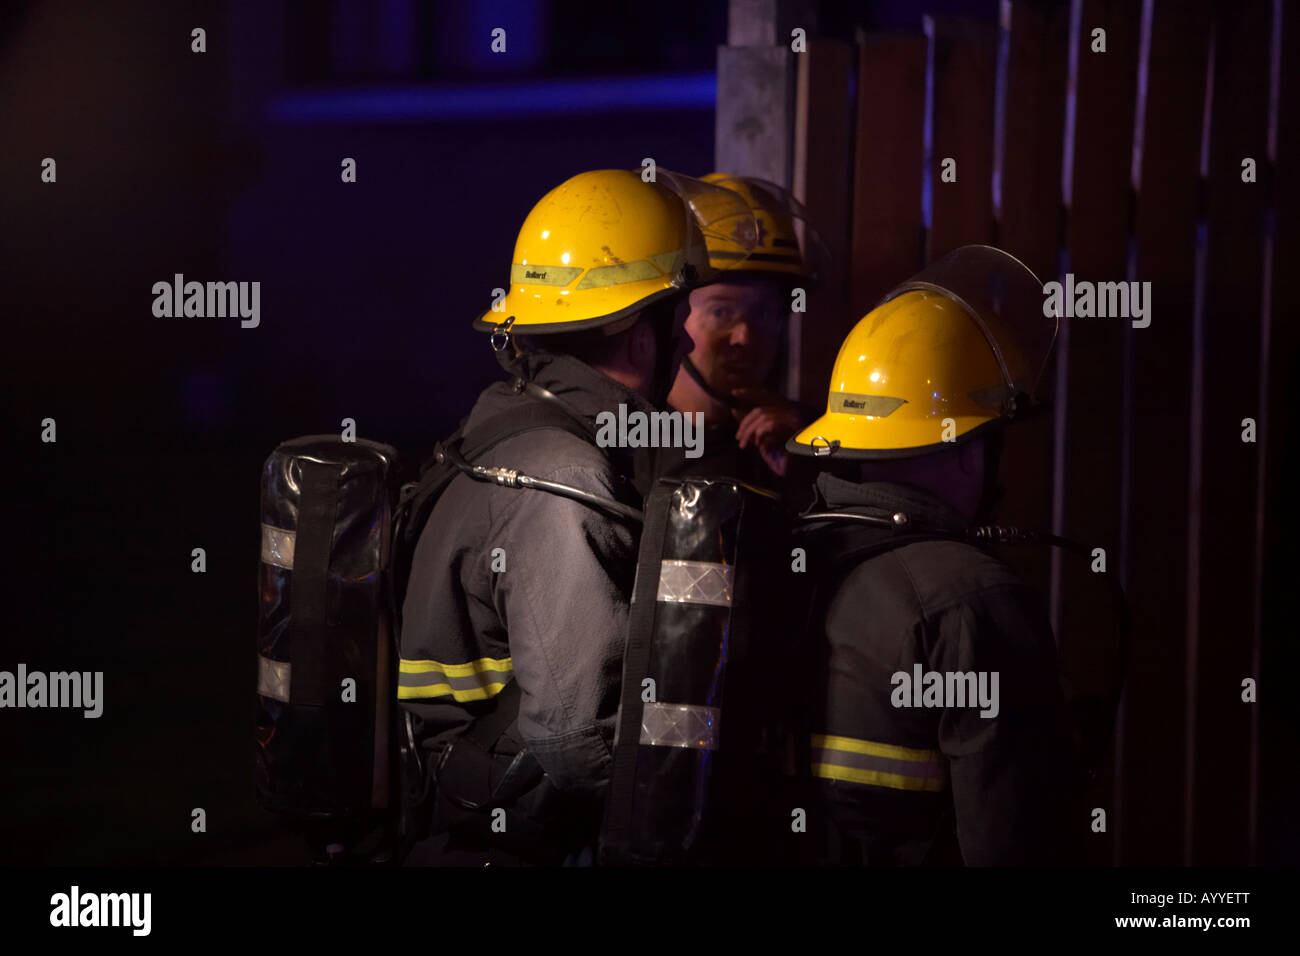 firefighters wearing helmets protective clothing and breathing apparatus waiting to gain entry to a residential - Stock Image